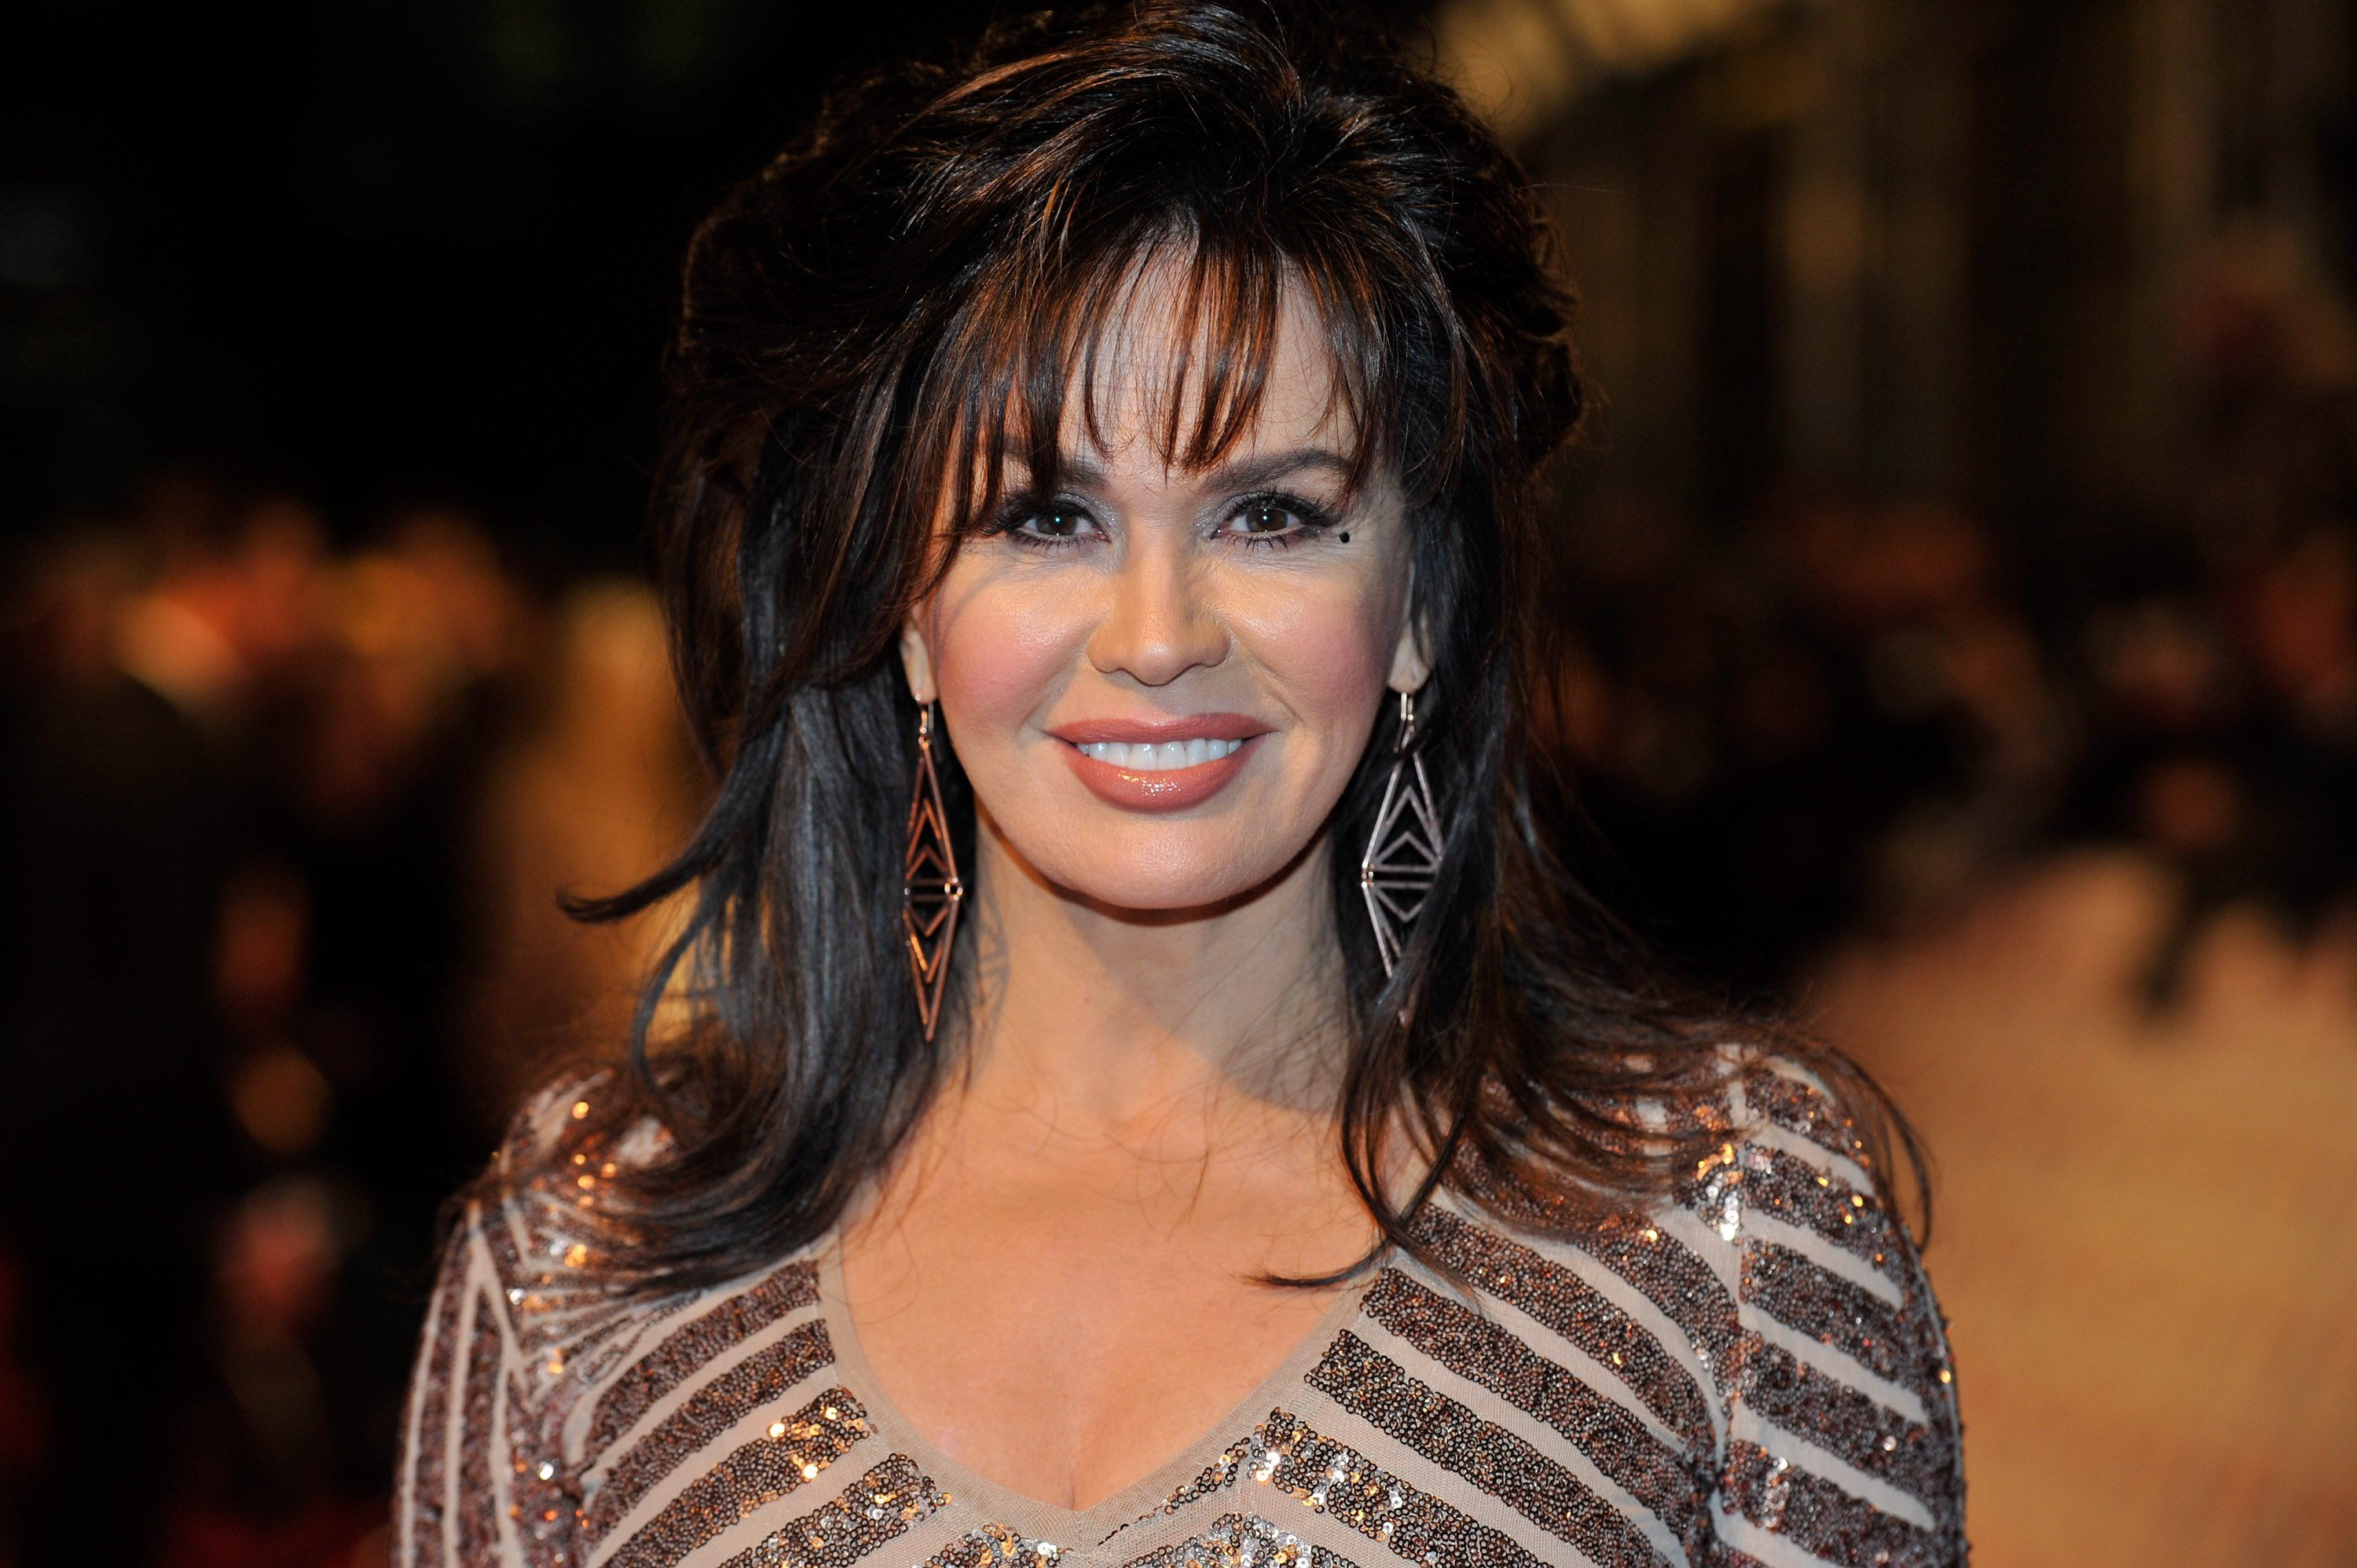 Marie Osmond attends the National Television Awards in London, England on January 23, 2013 | Photo: Getty Images